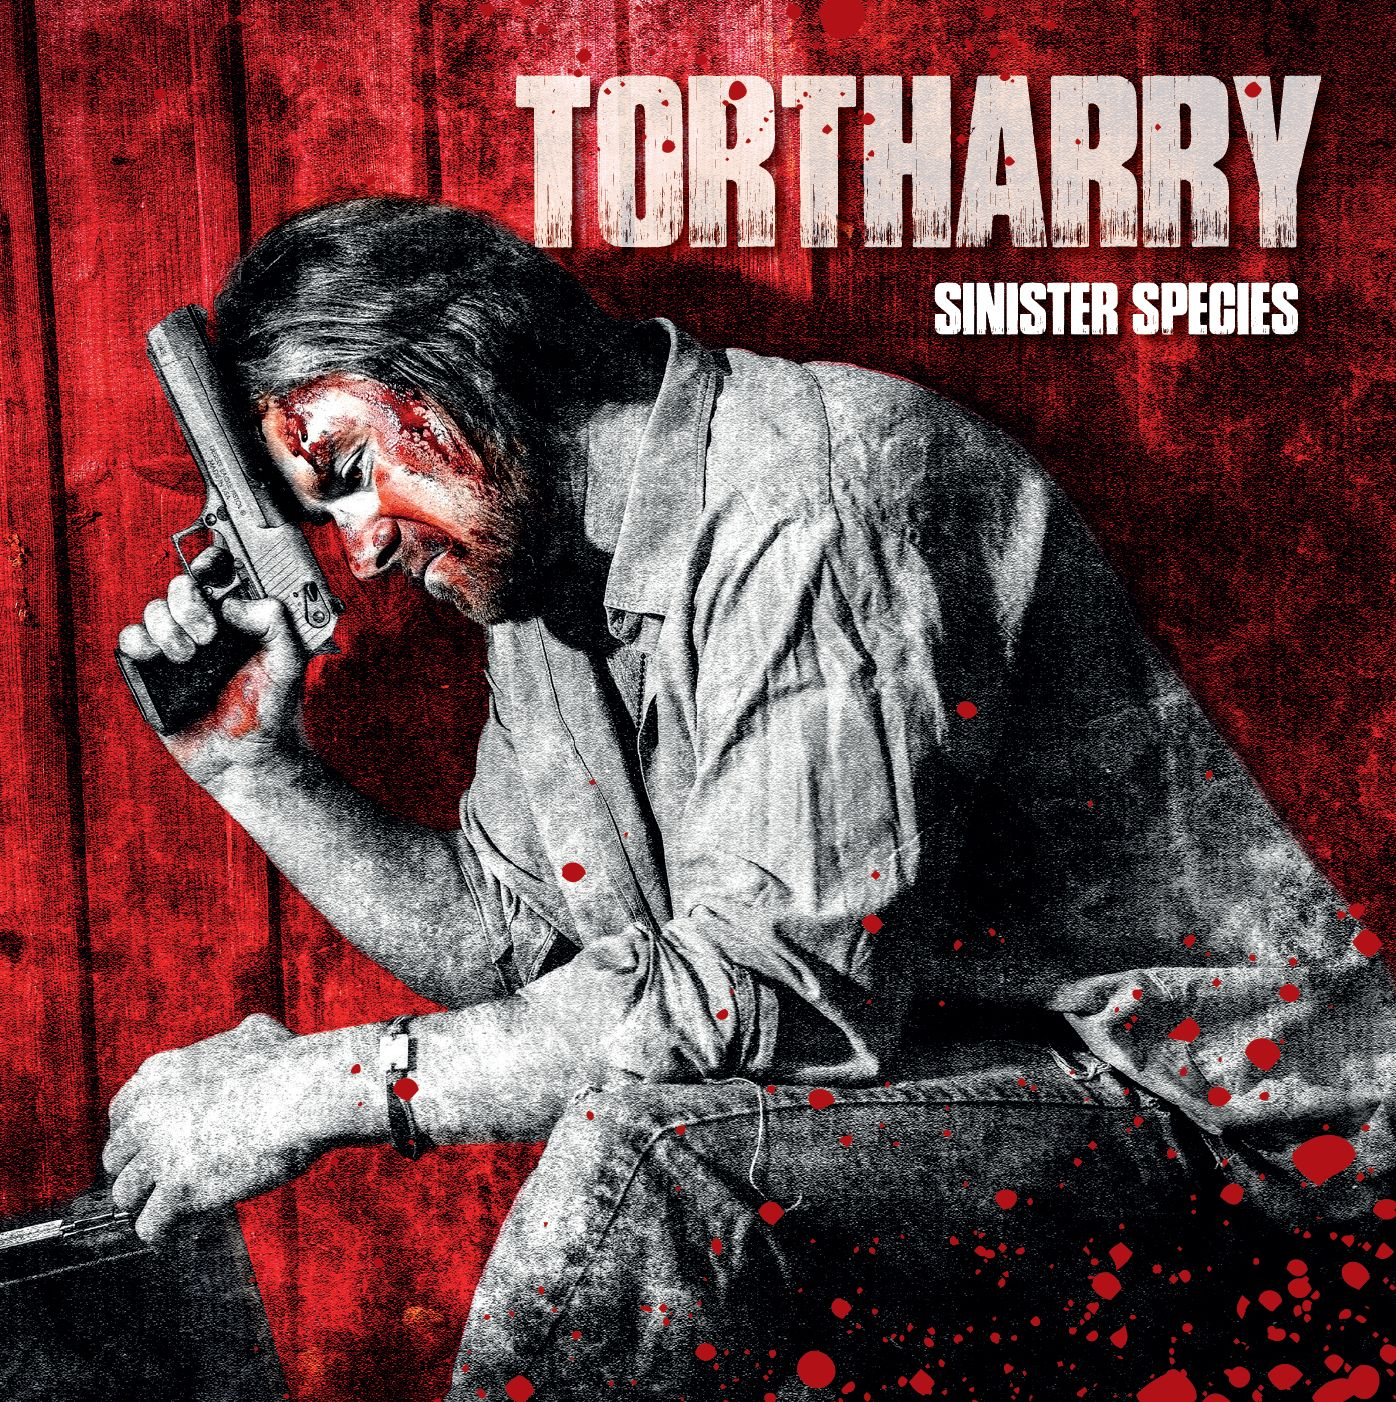 TORTHARRY Sinister Species